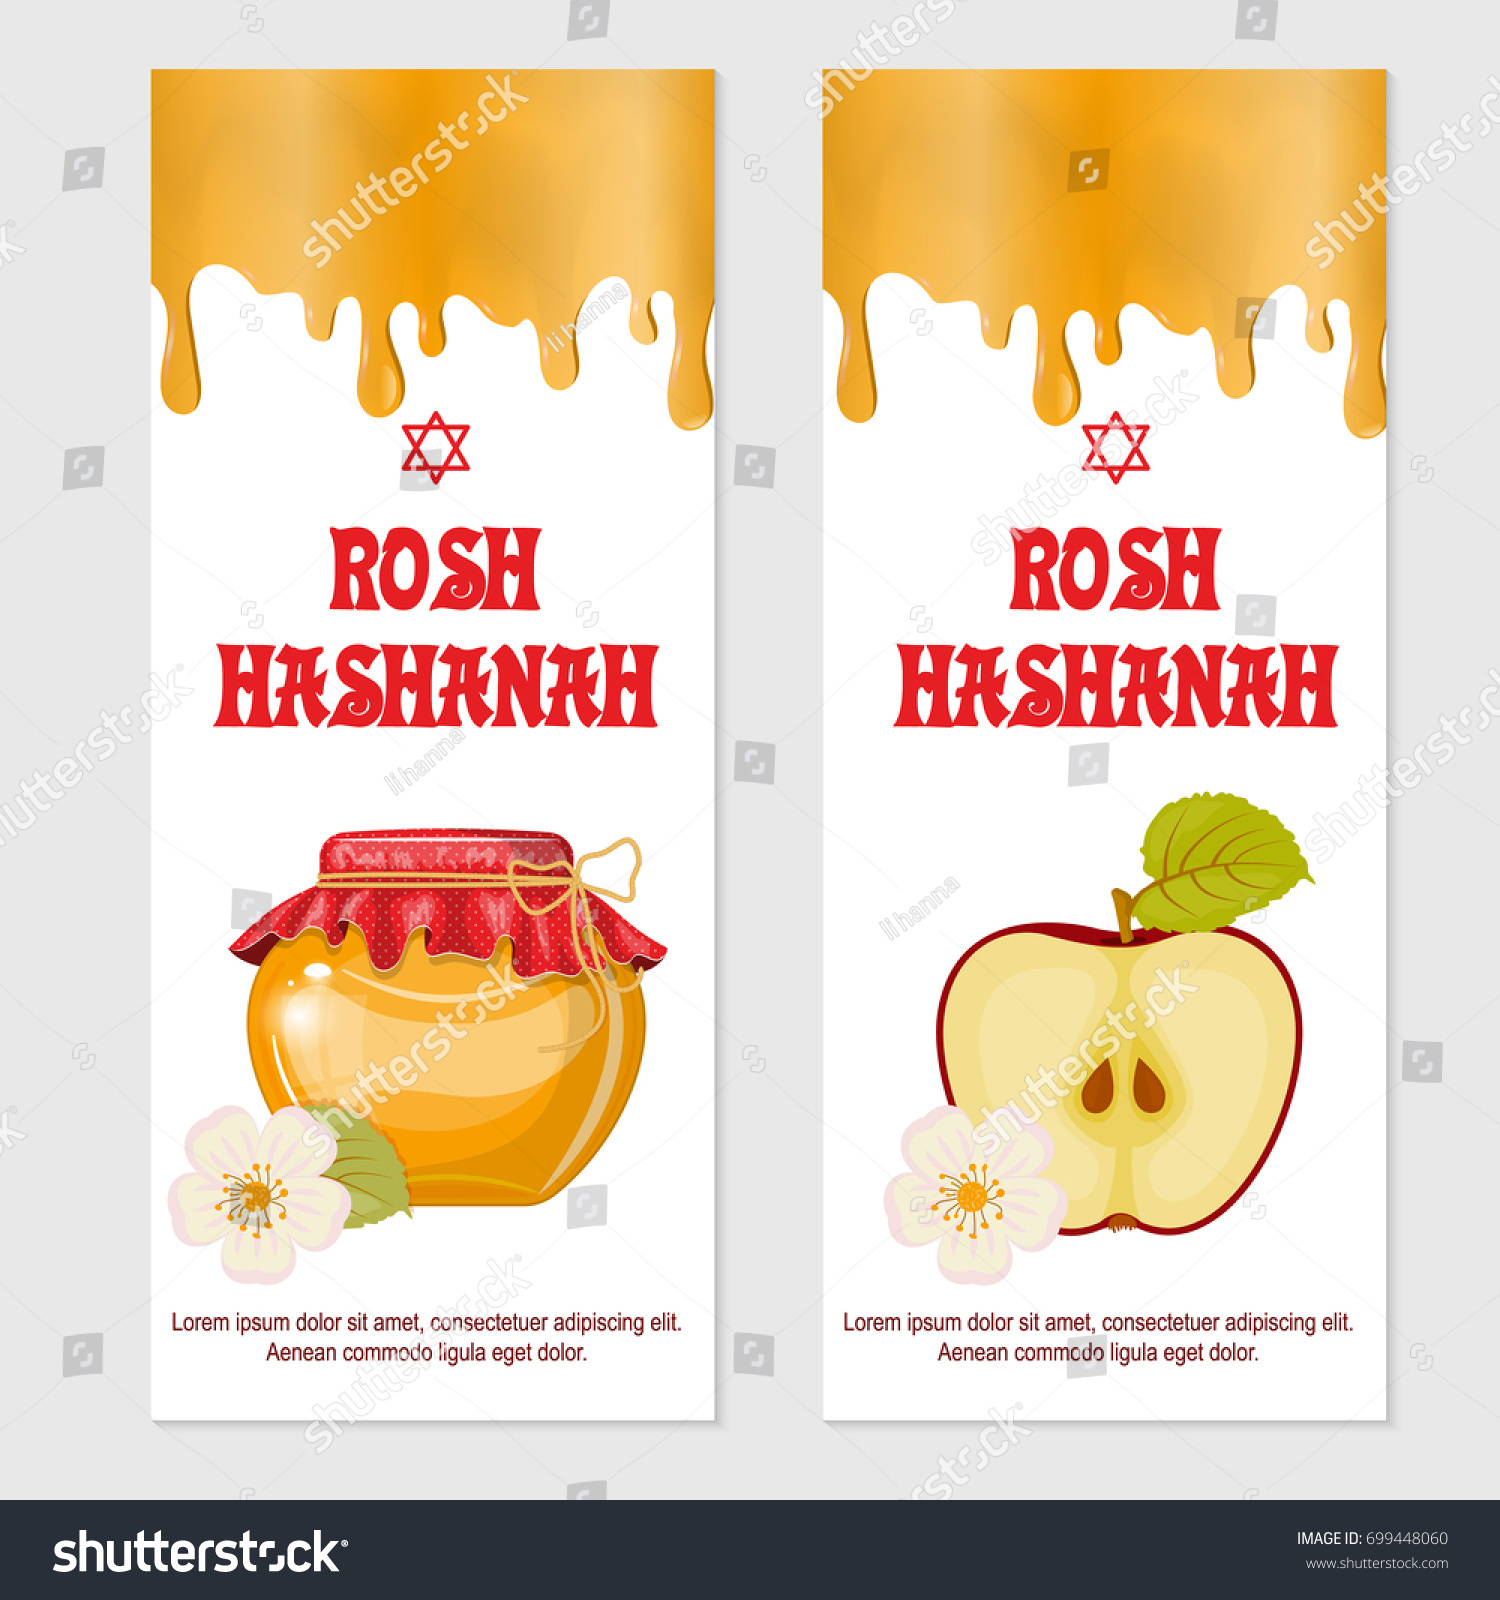 Rosh hashanah jewish new year greeting stock vector 699448060 rosh hashanah jewish new year greeting card set design with hand drawing apple honey and pomegranate kristyandbryce Choice Image